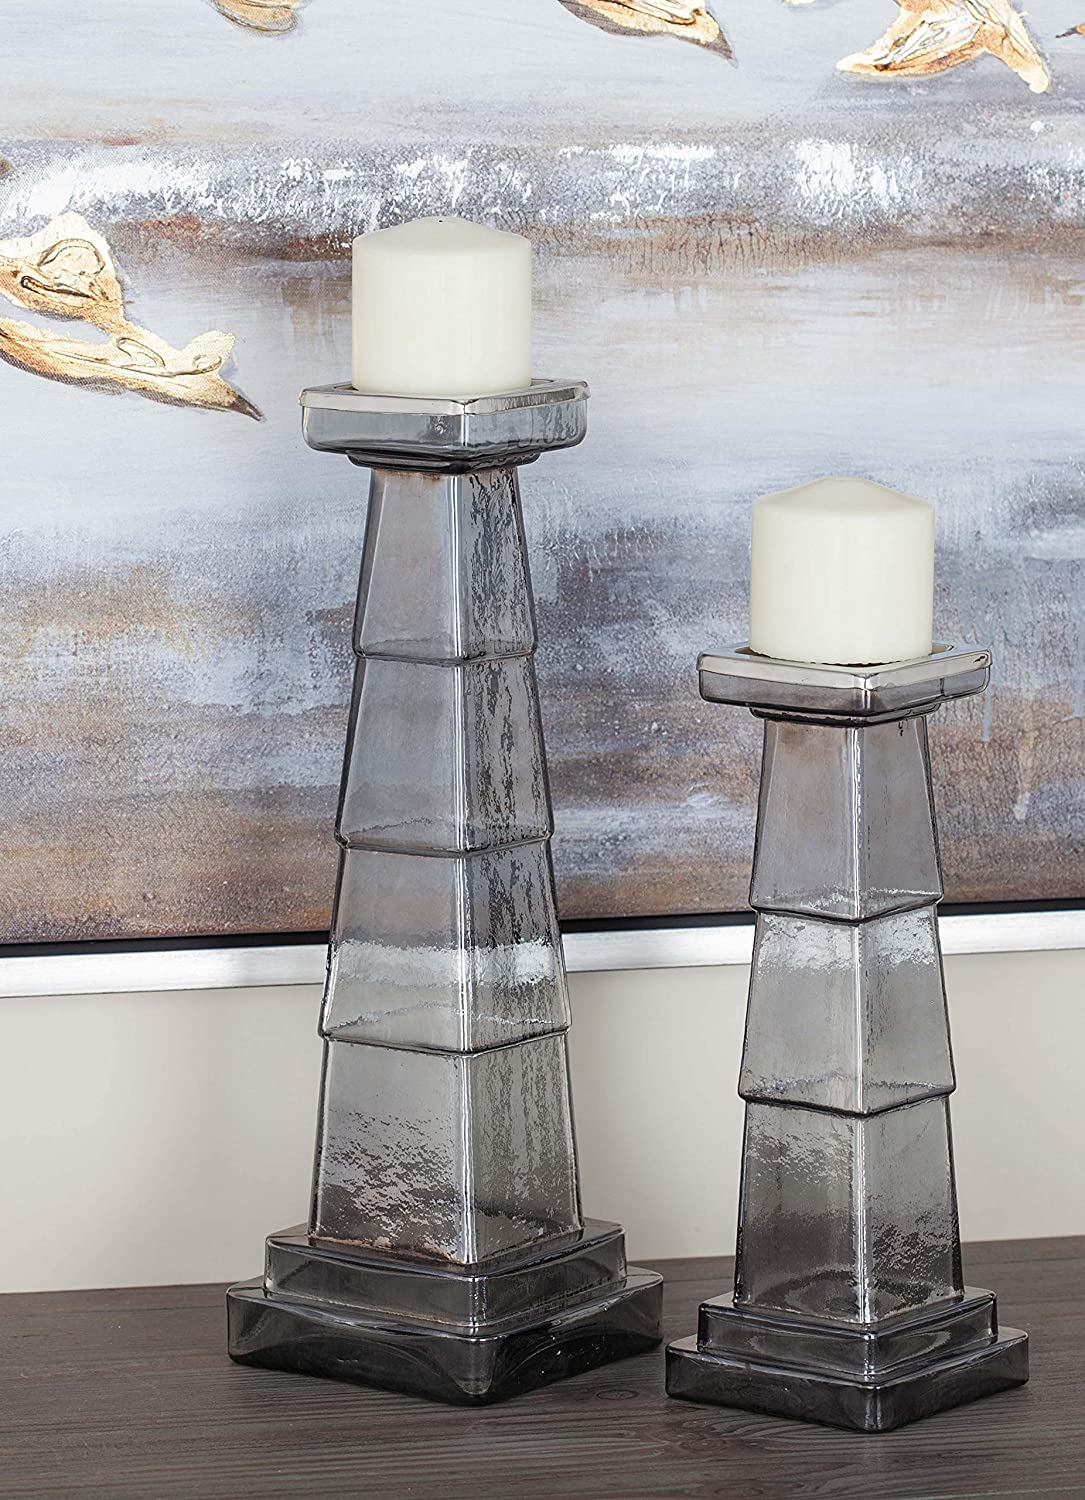 Clear Deco 79 24676 Lattice-Patterned Glass Candle Holders 9 x 12 Set of 2